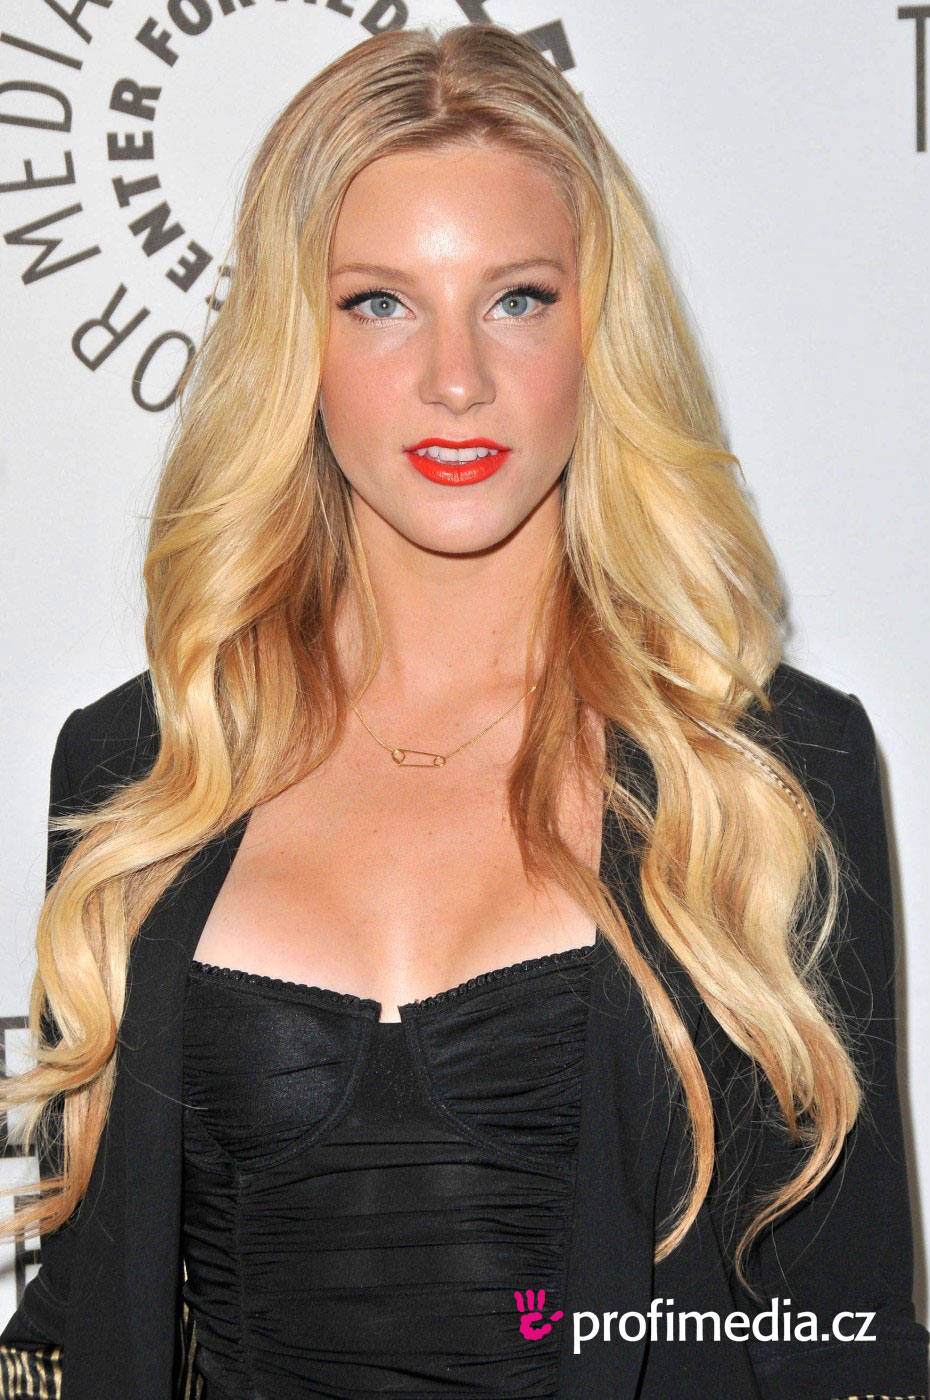 Celebrity Heather Morris naked (97 photos), Sexy, Hot, Feet, lingerie 2015